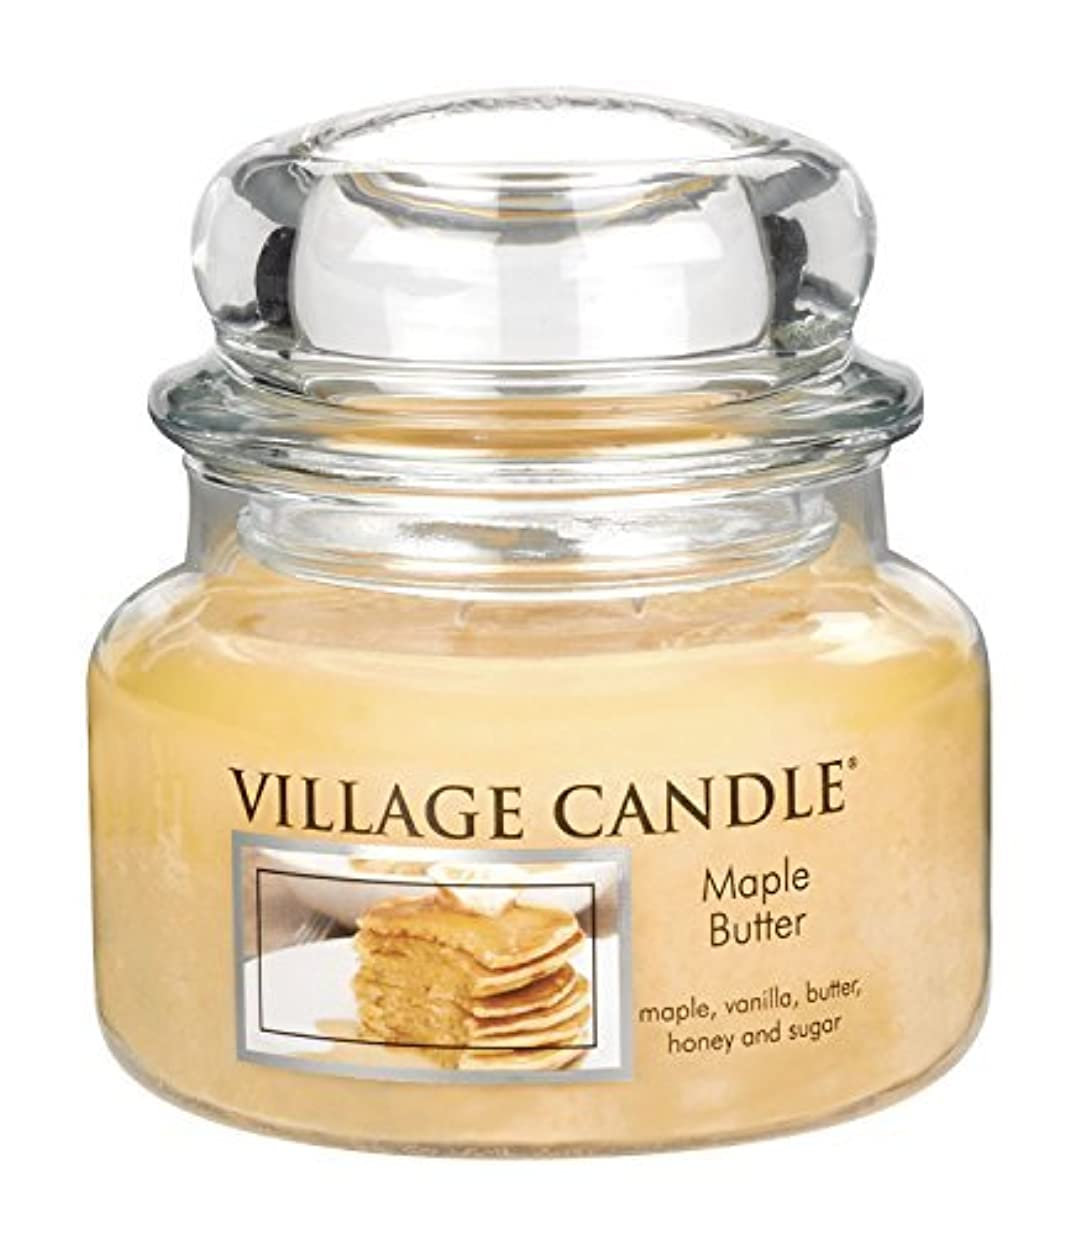 シンポジウム十分です天のVillage Candle Maple Butter 11 oz Glass Jar Scented Candle Small [並行輸入品]